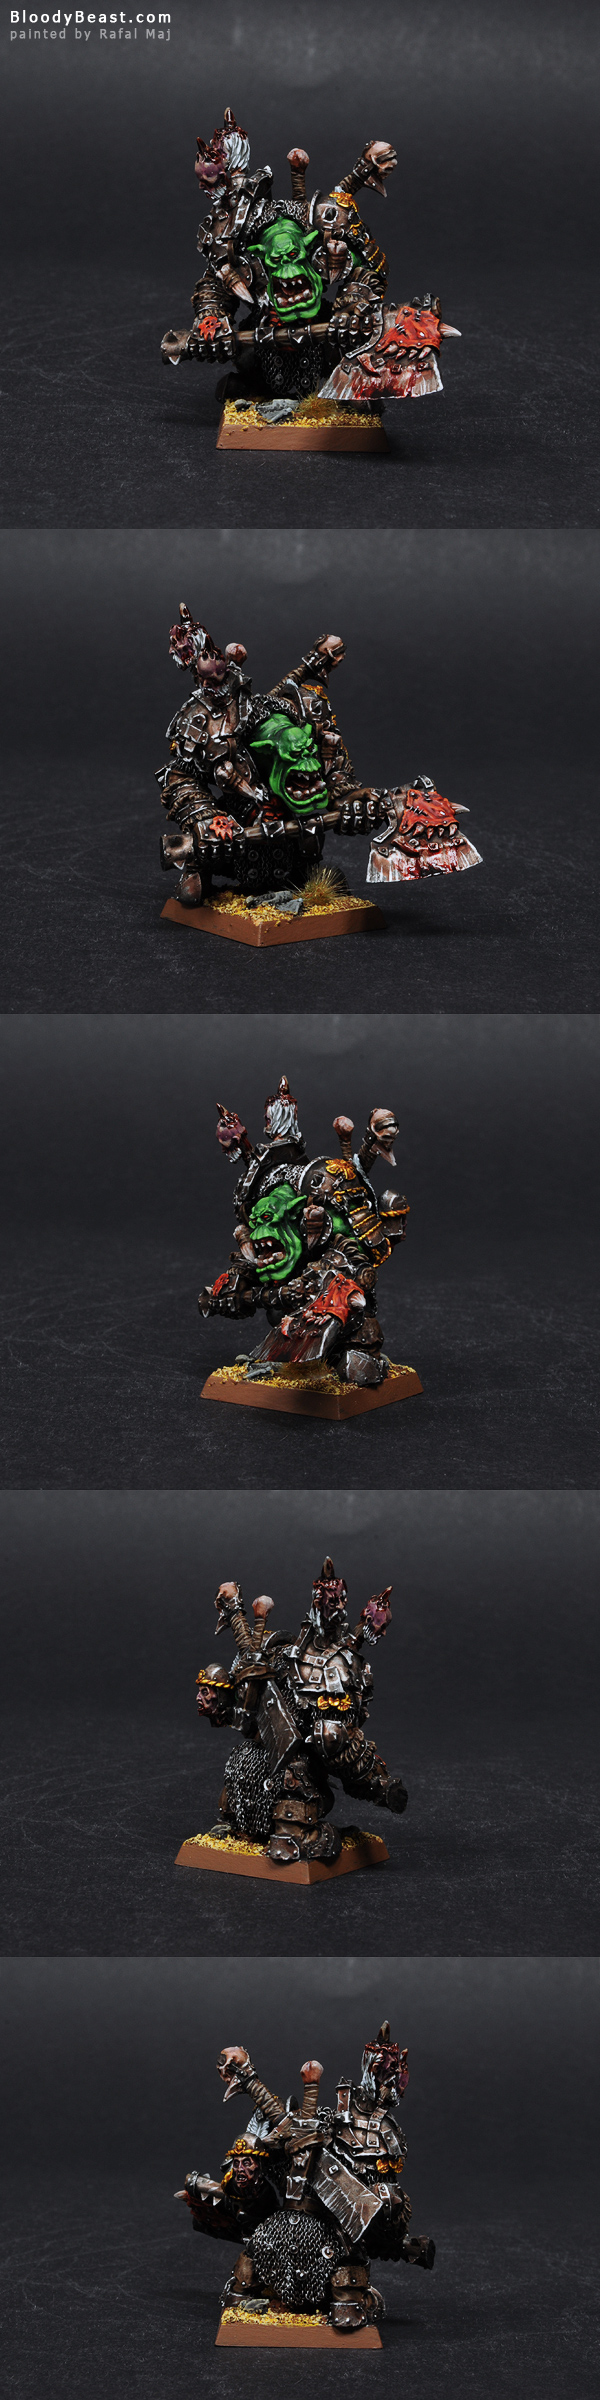 Forge World Orc Warboss painted by Rafal Maj (BloodyBeast.com)